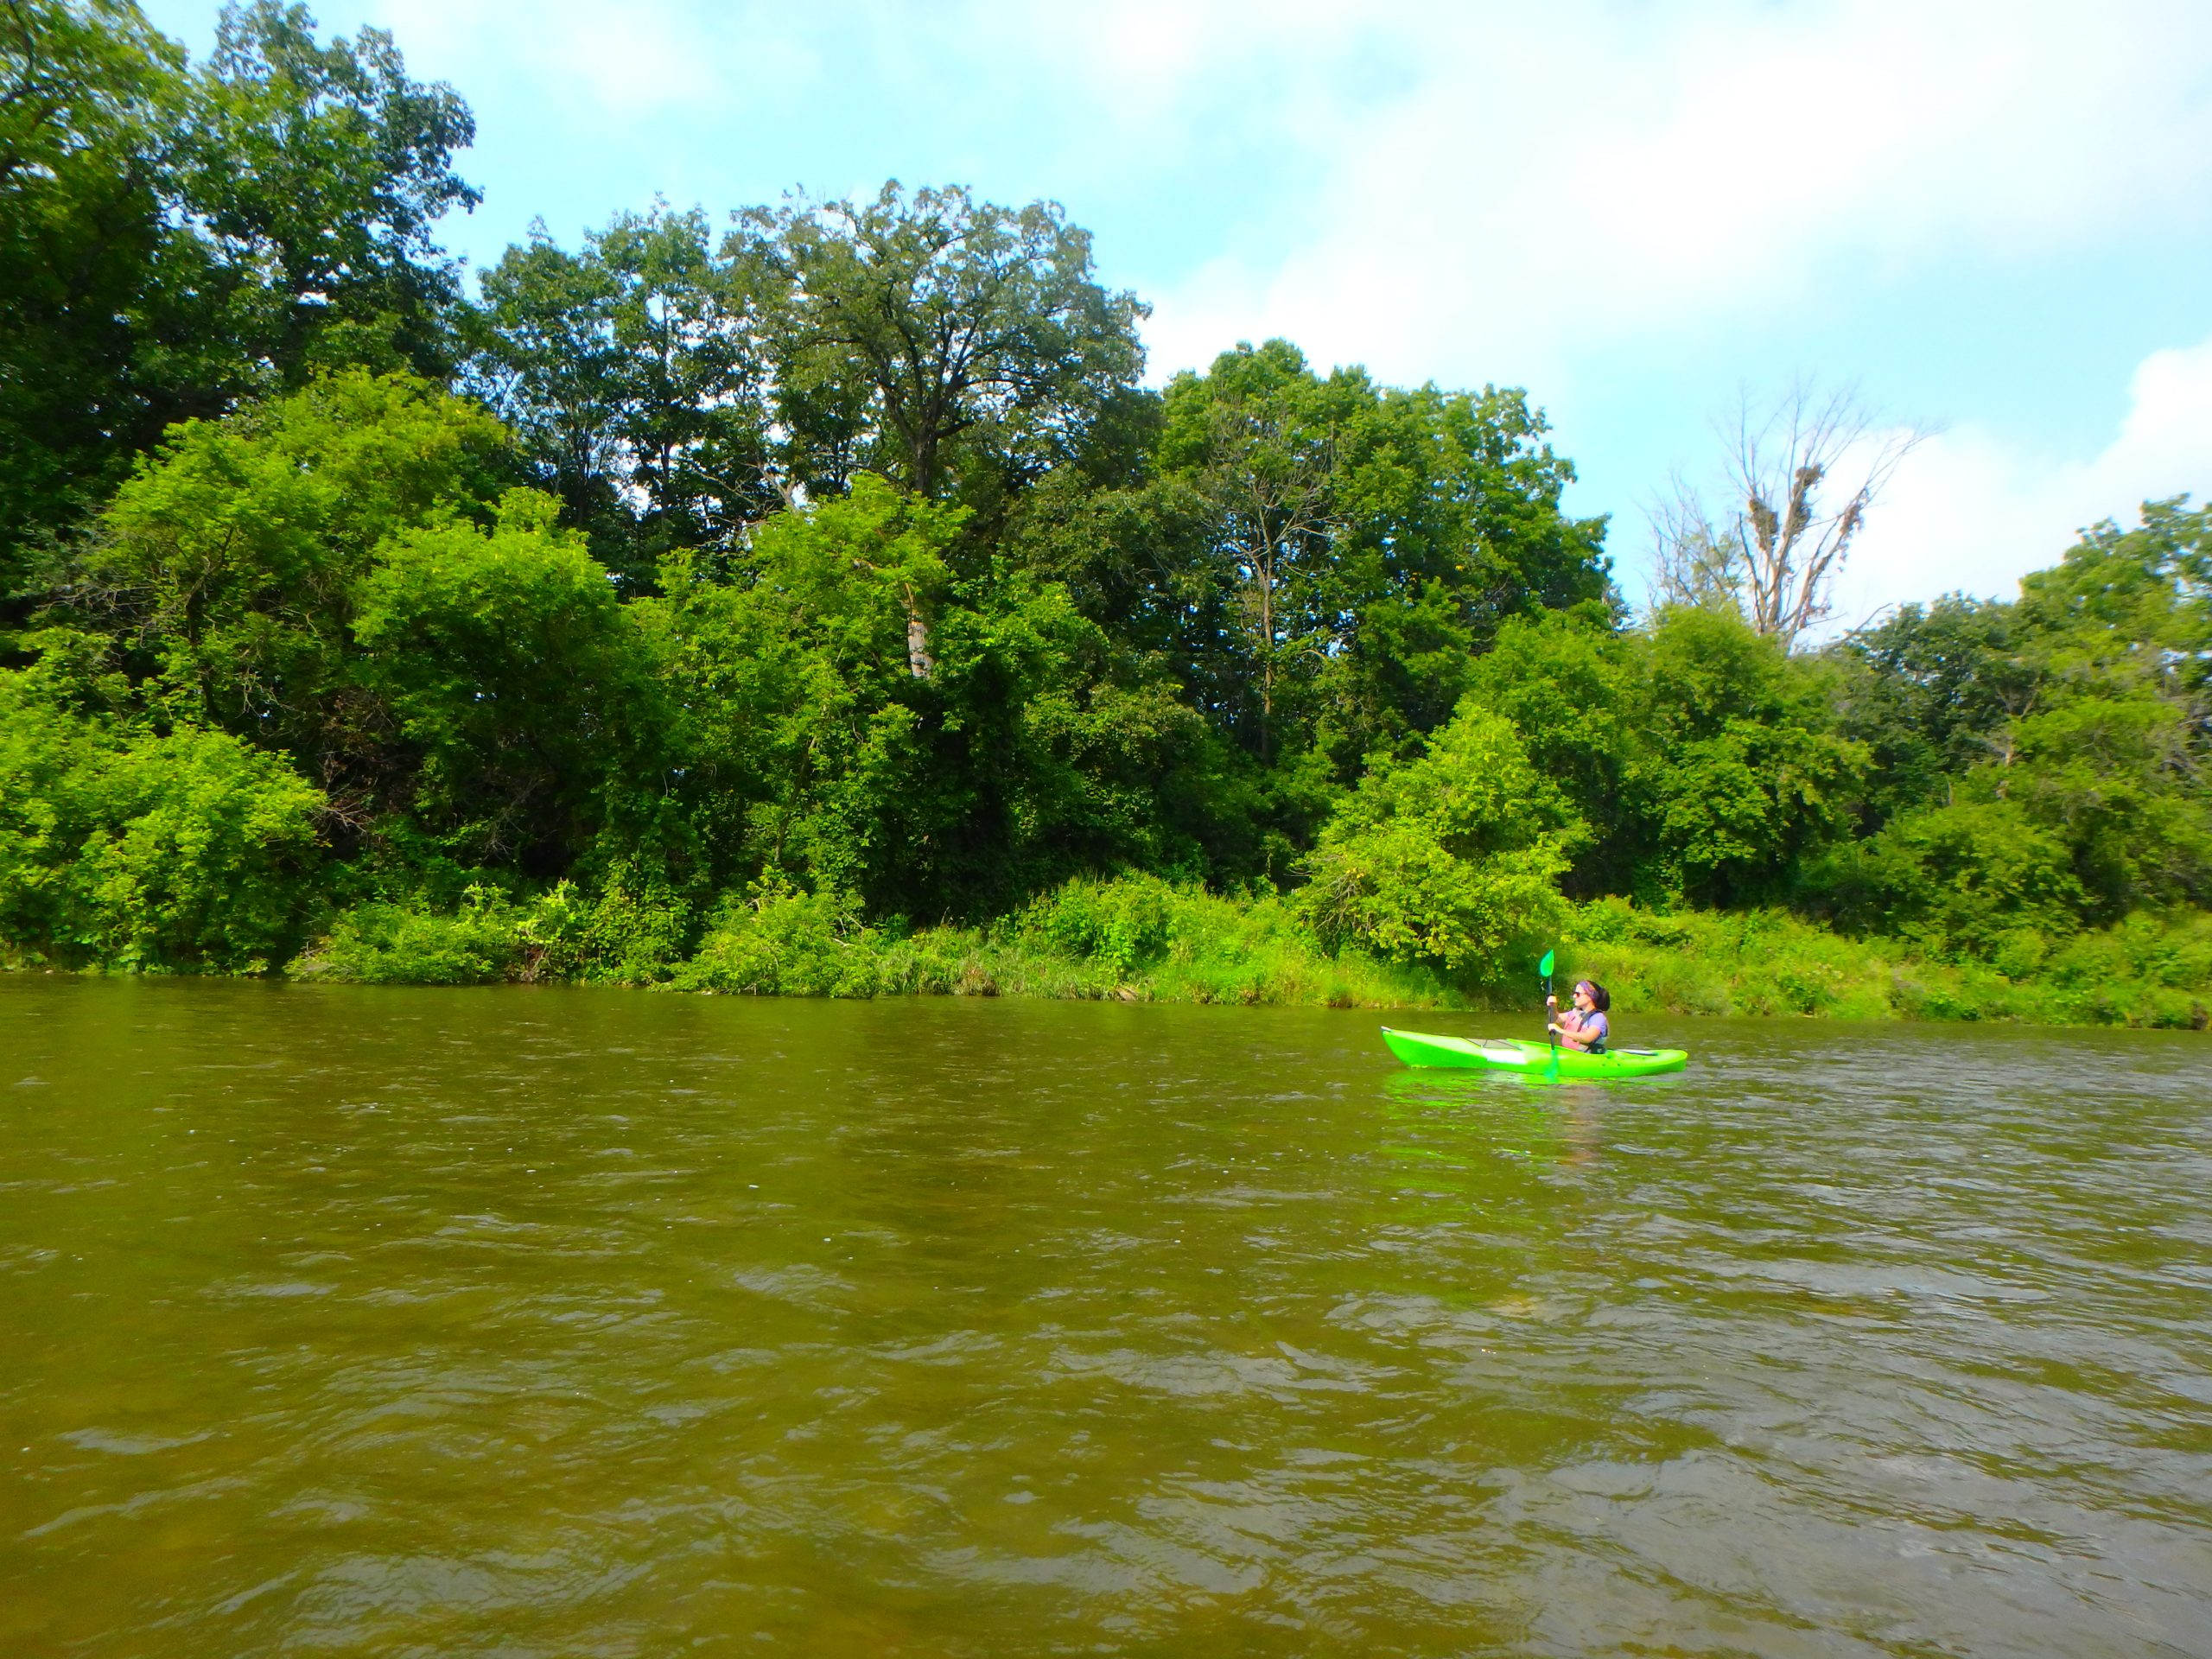 Kayaking, Yoga & Meditation - August 26, 2018-1259